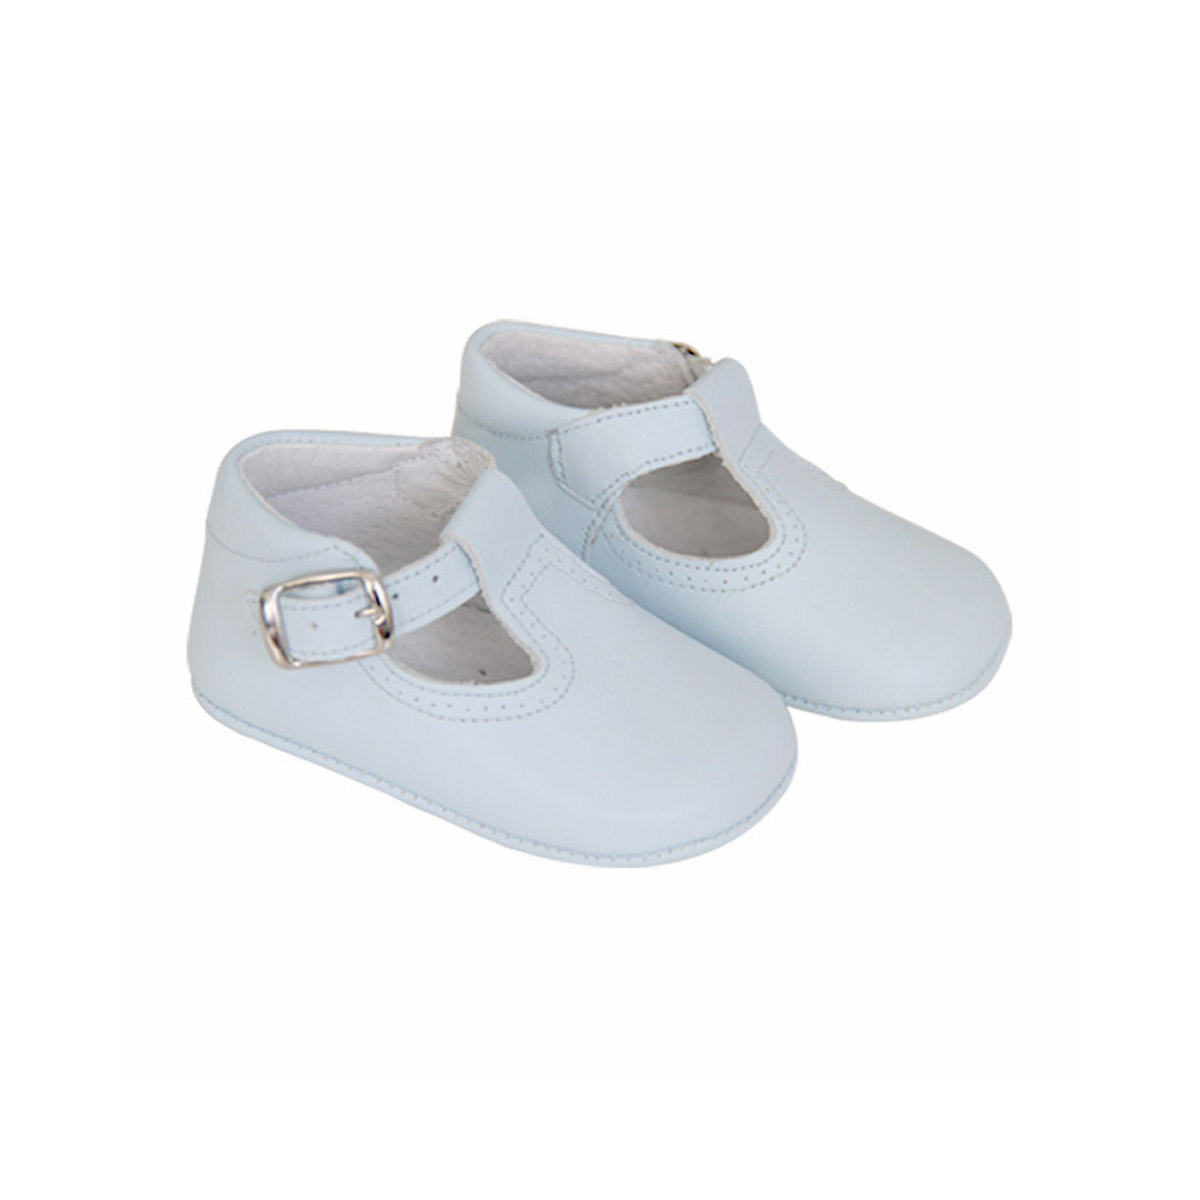 ChildrenChic Leather T-Band Shoe in White